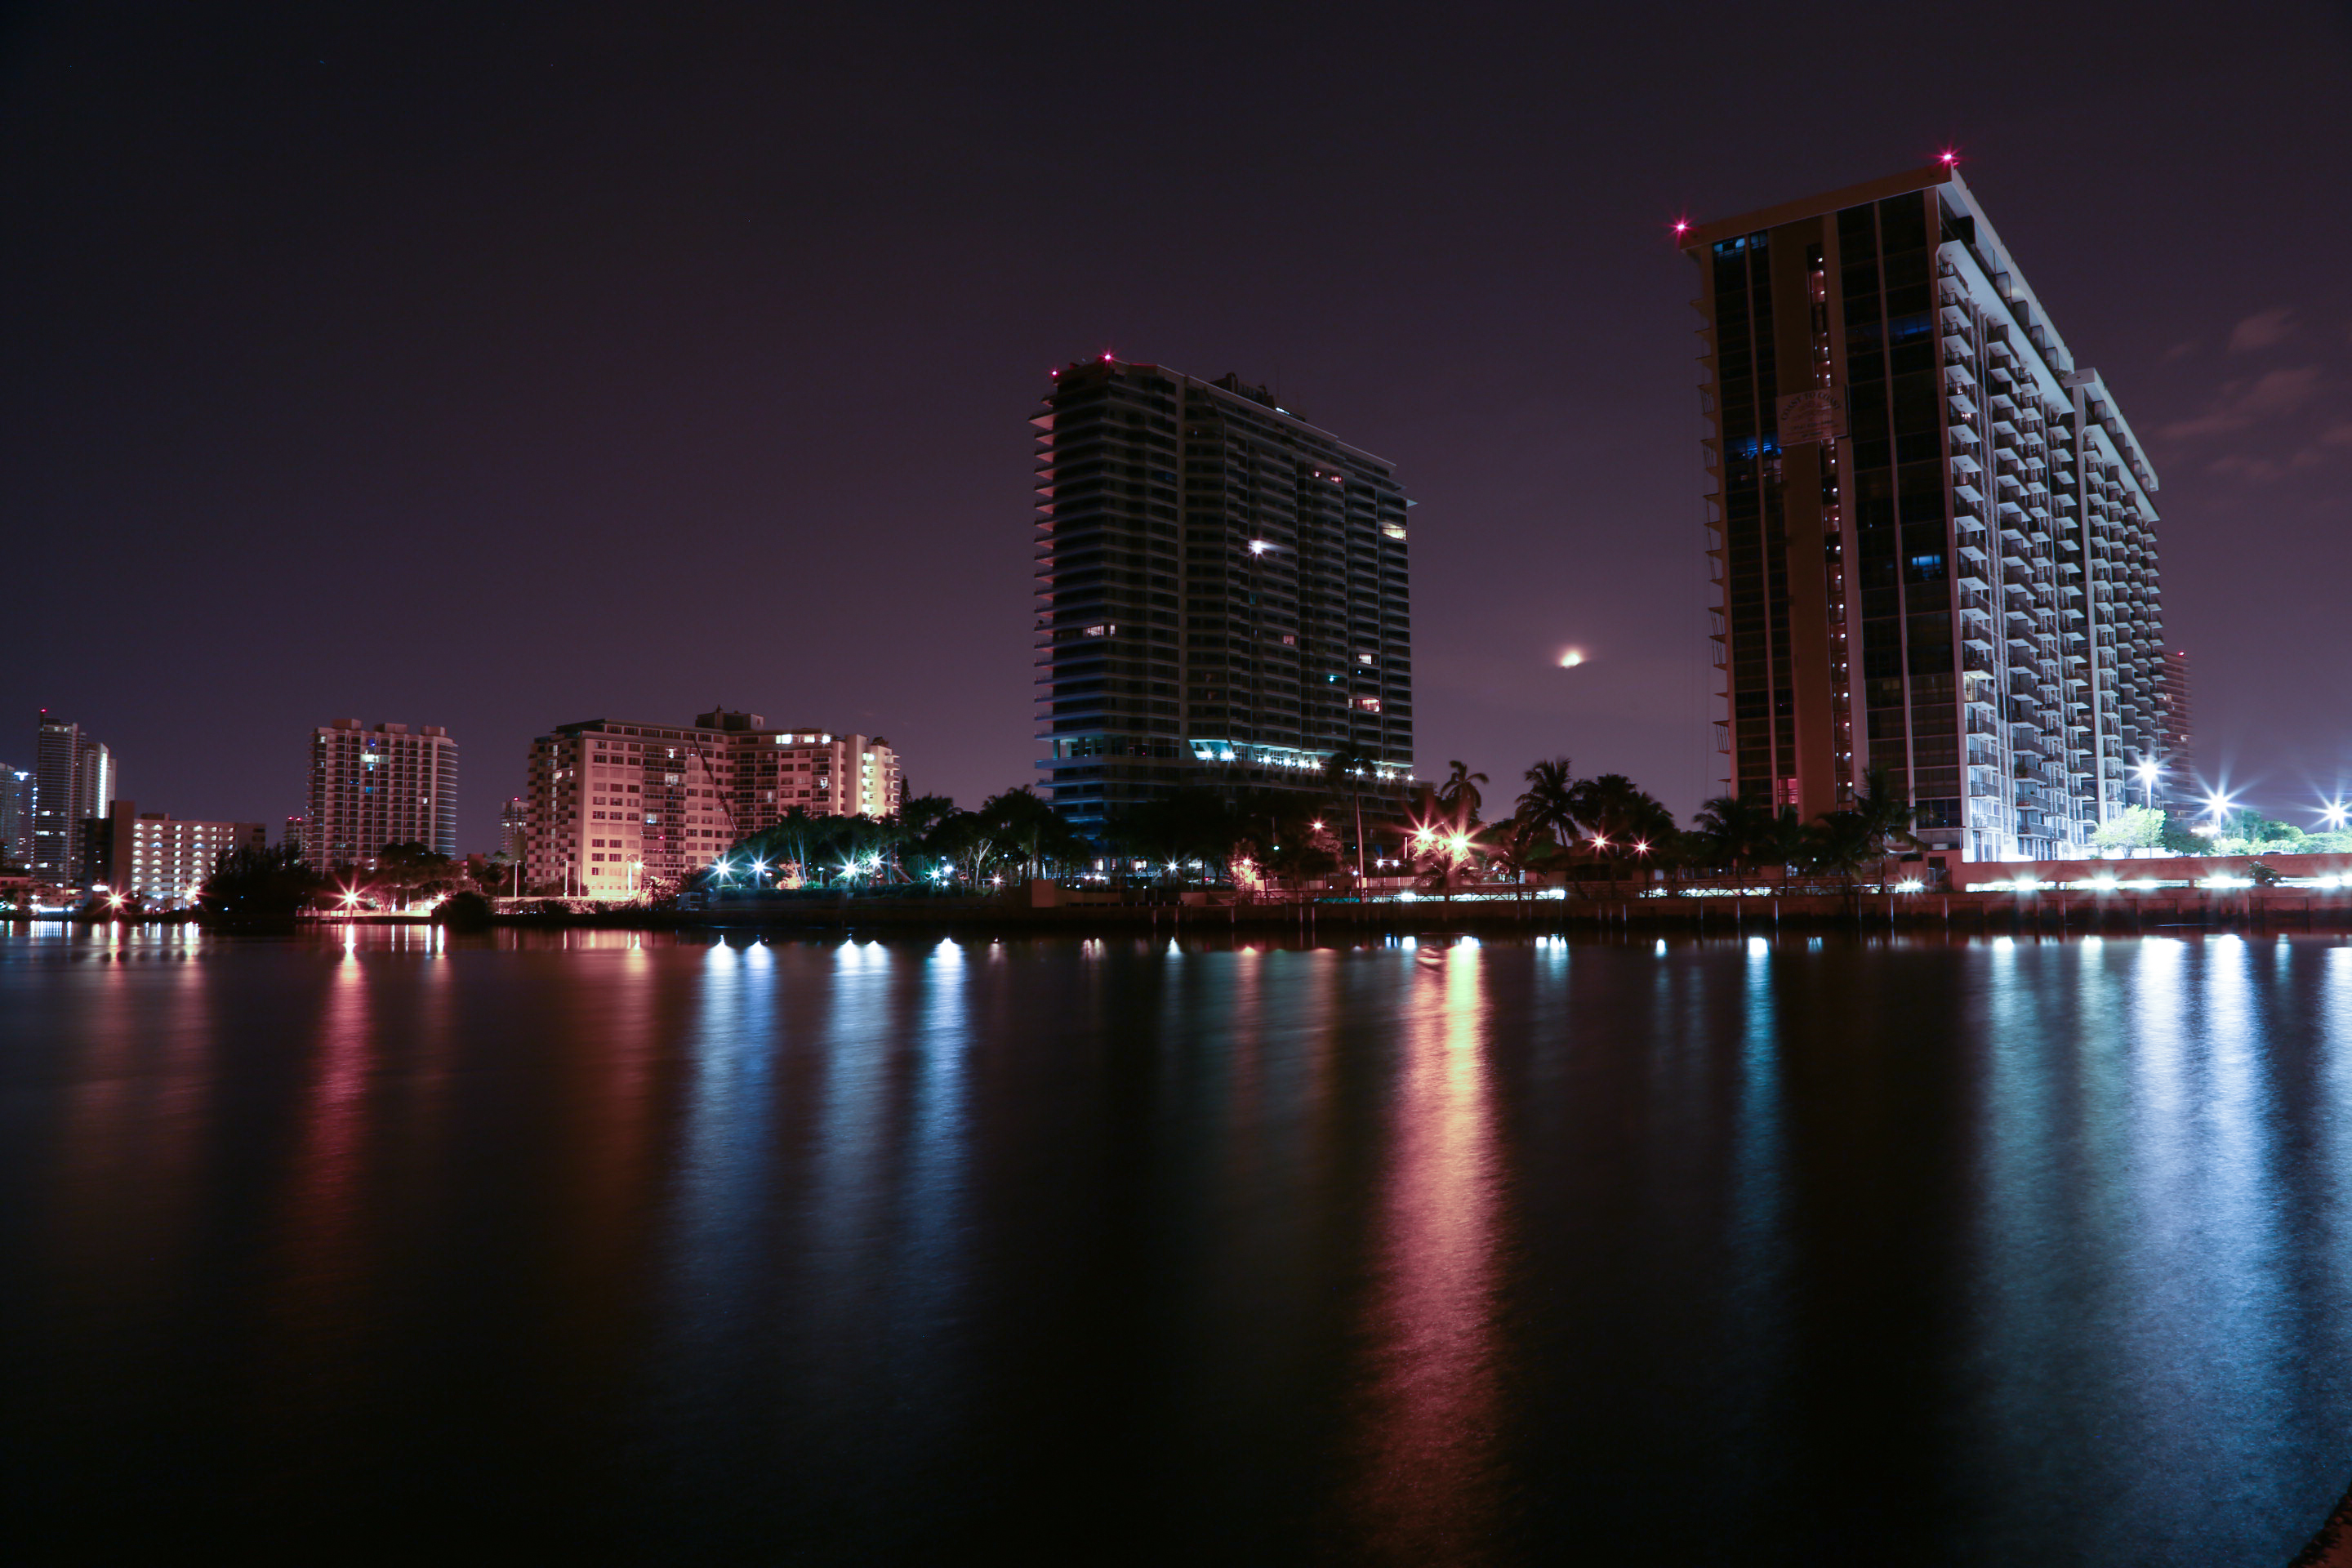 Miami Beach Skyline Exclusive HD Wallpapers 4790 2880x1920